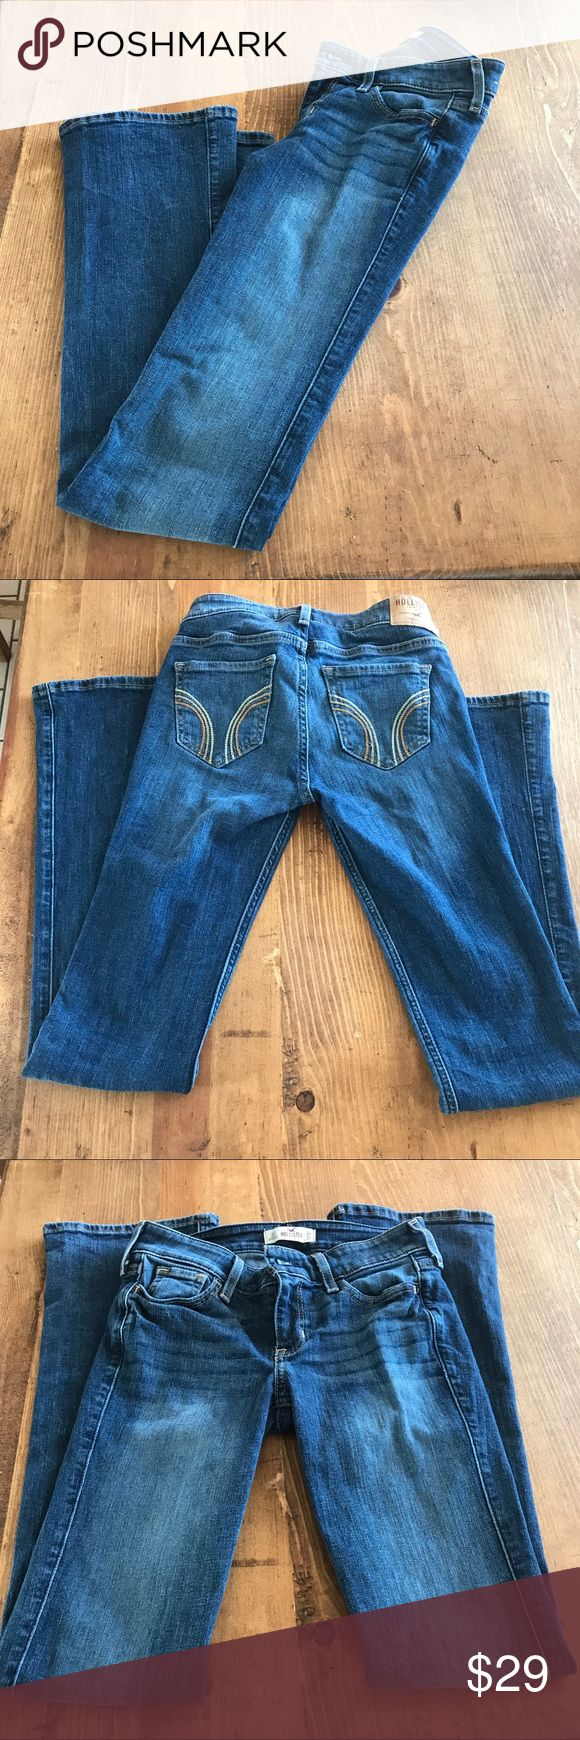 Hollister Boot cut Jeans size 0 short! Hollister Boot cut Jeans size 0 short. Waist 24 inches, length 31 inches. Excellent condition! Smoke free, pet friendly 🐶😻 home! Hollister Jeans Boot Cut